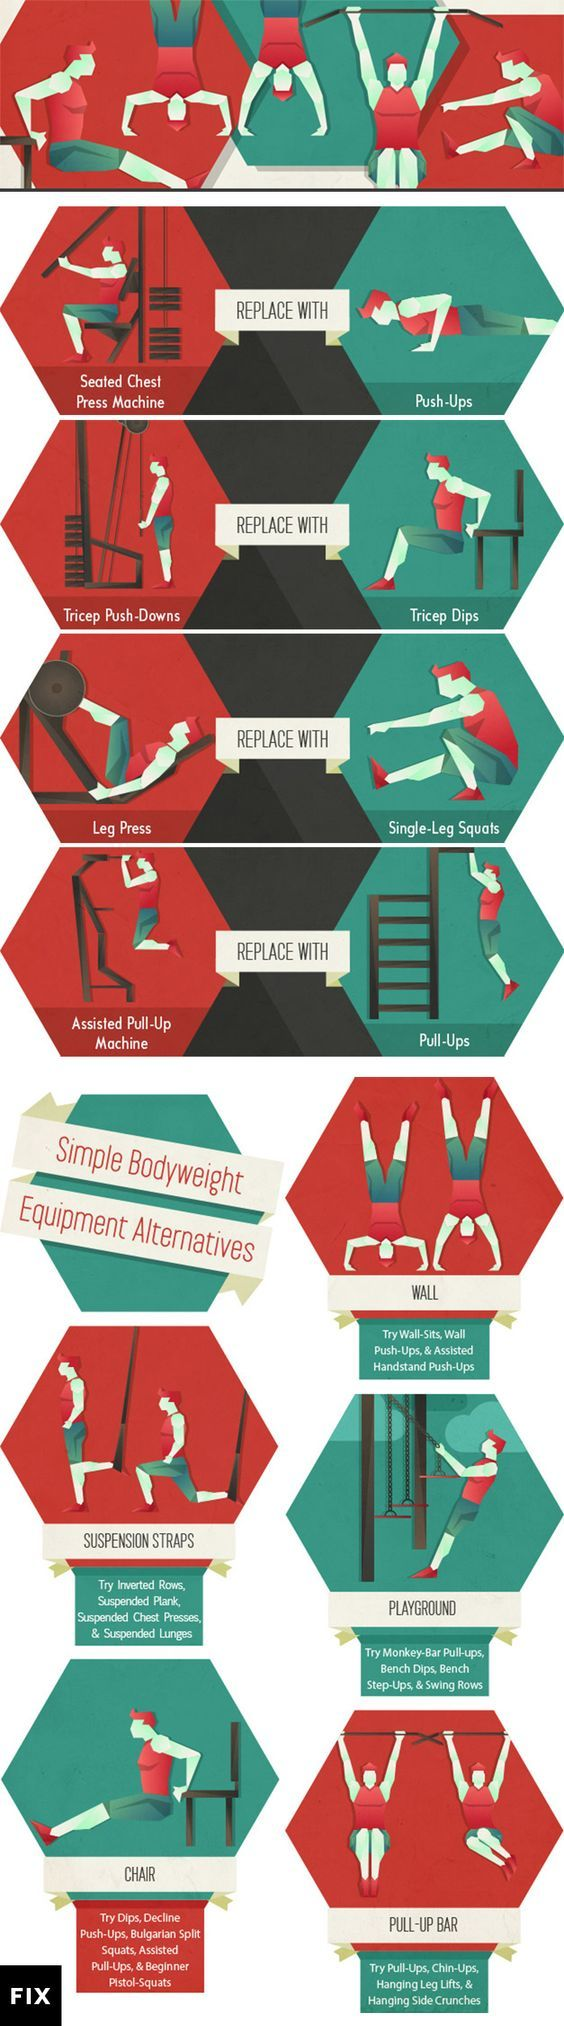 No Equipment? No Problem! The Benefits of Bodyweight Training - http://www.fix.com/blog/benefits-of-bodyweight-training/